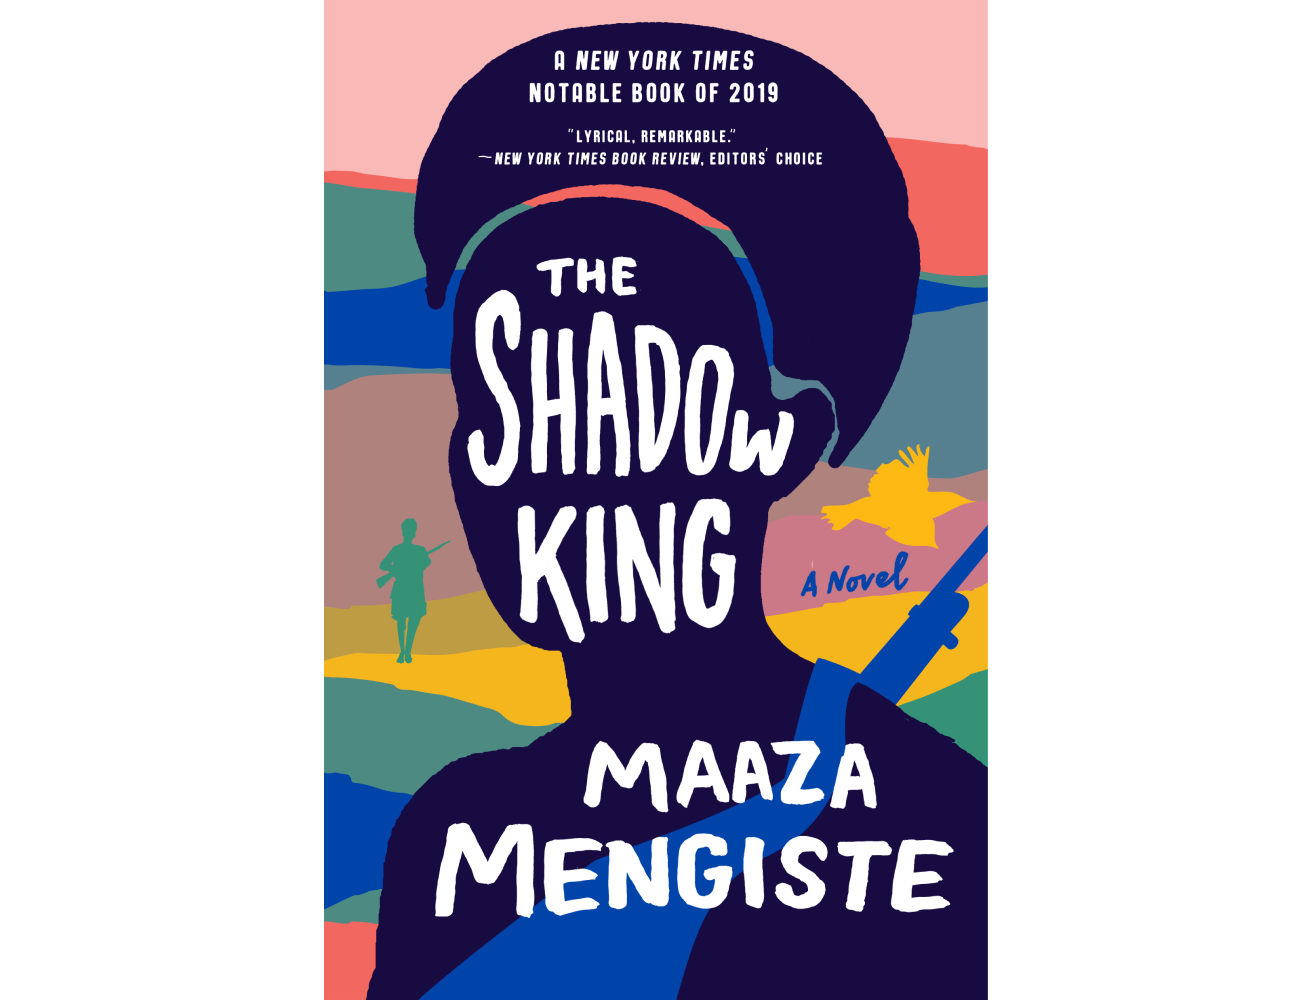 "<em> The Shadow King </em> de Maaza Mengiste""/></a> <div> <h3><a href="